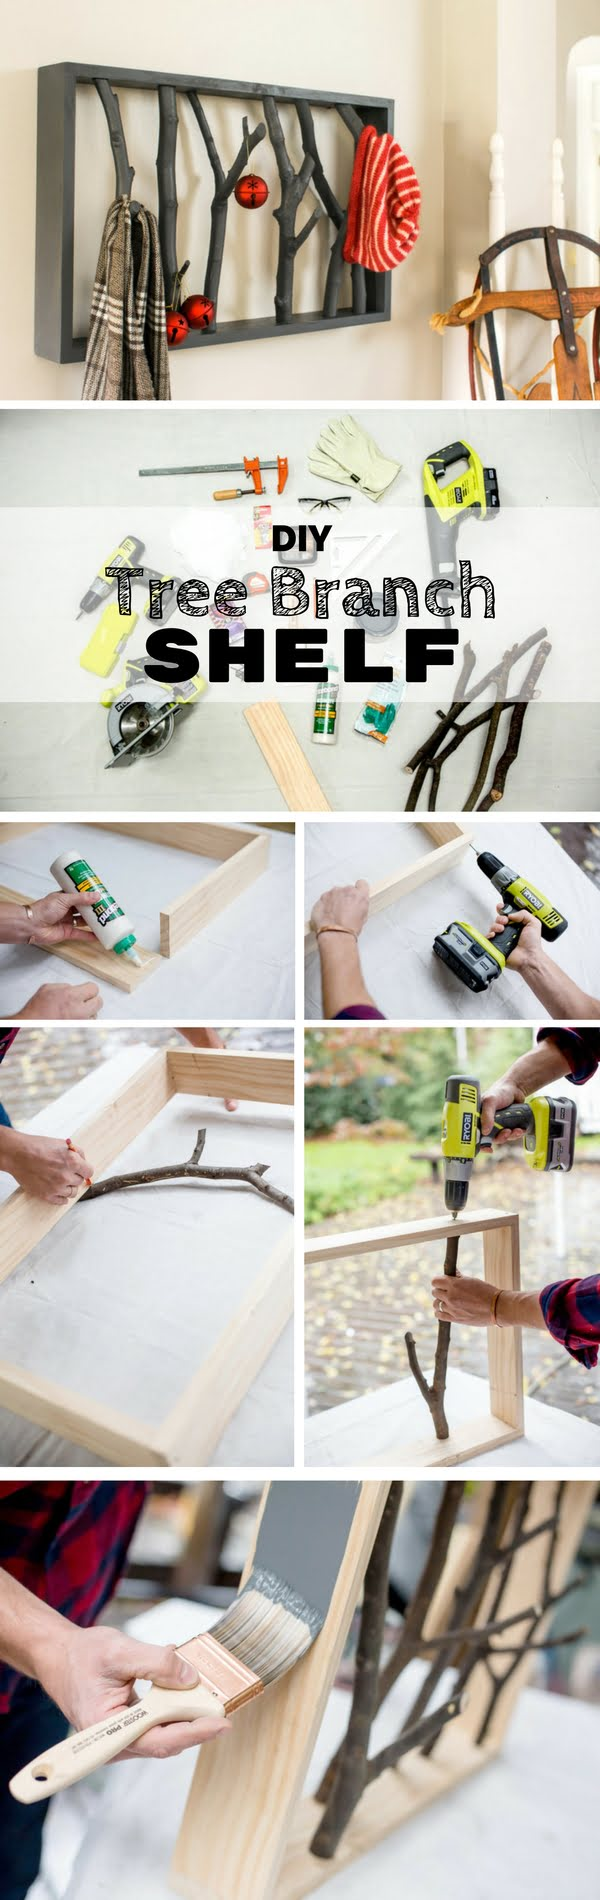 Check out the tutorial:  Tree Branch Shelf